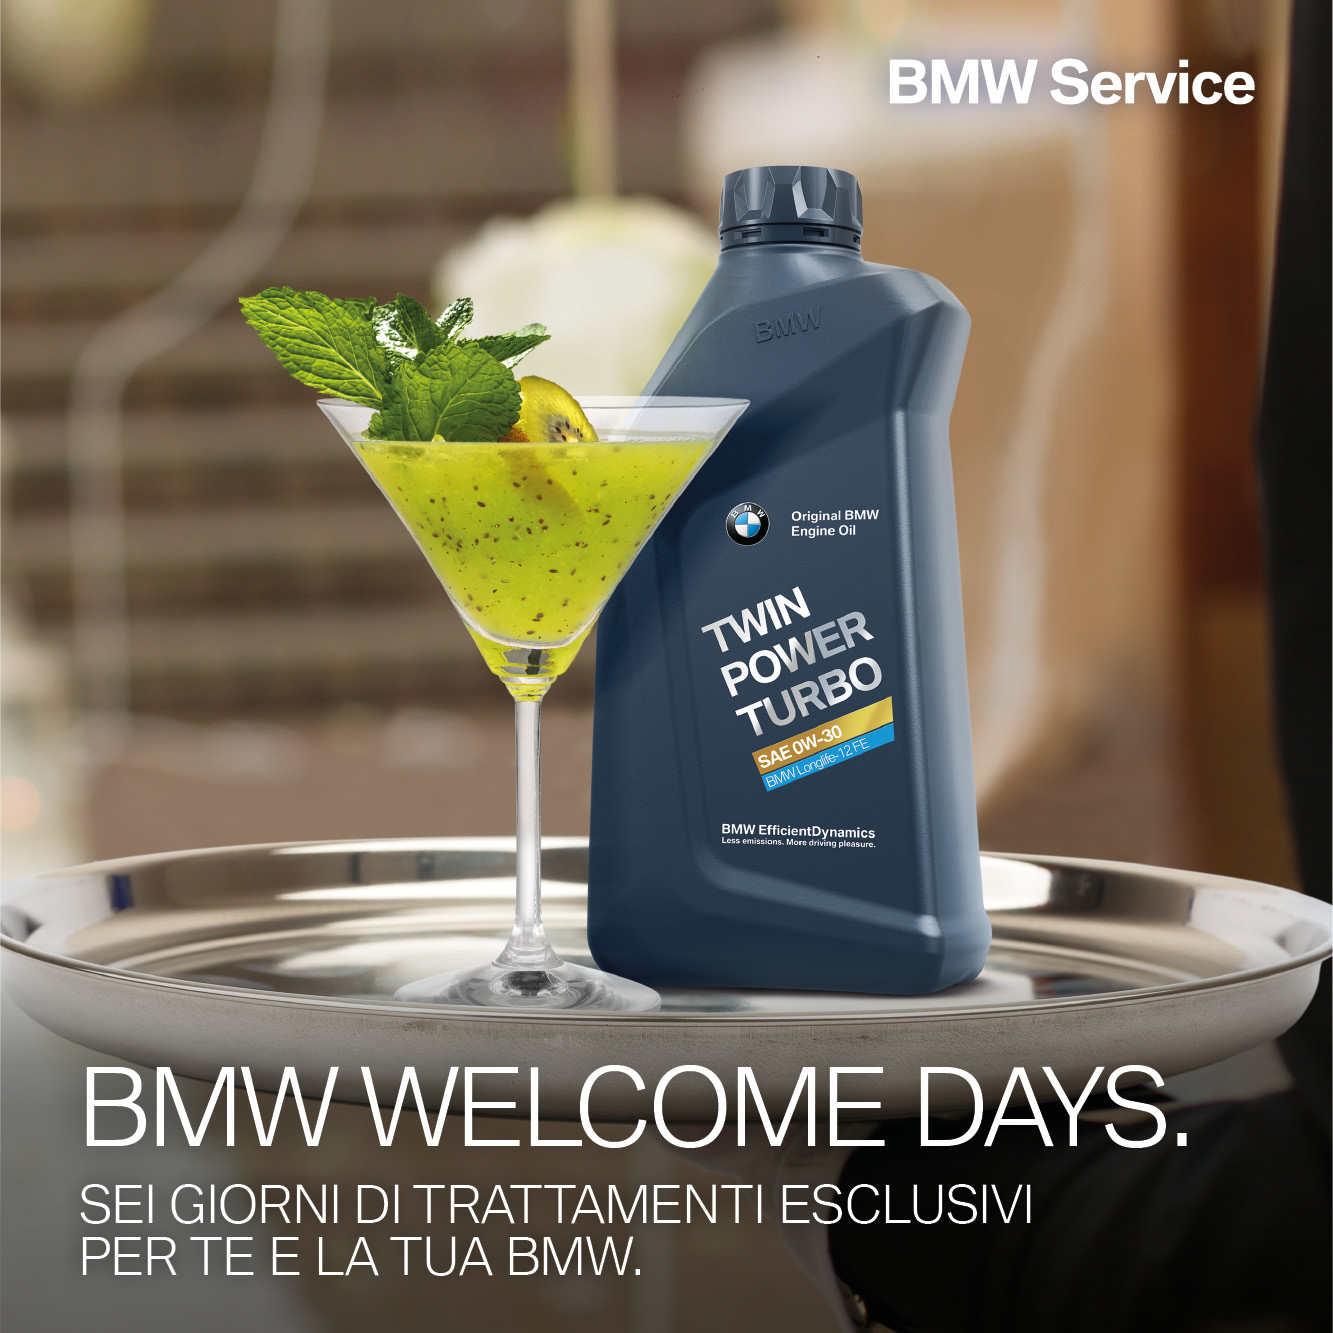 B 106076 BMW WELCOME DAYS 6 11 MAGGIO POST FB 1000x1000